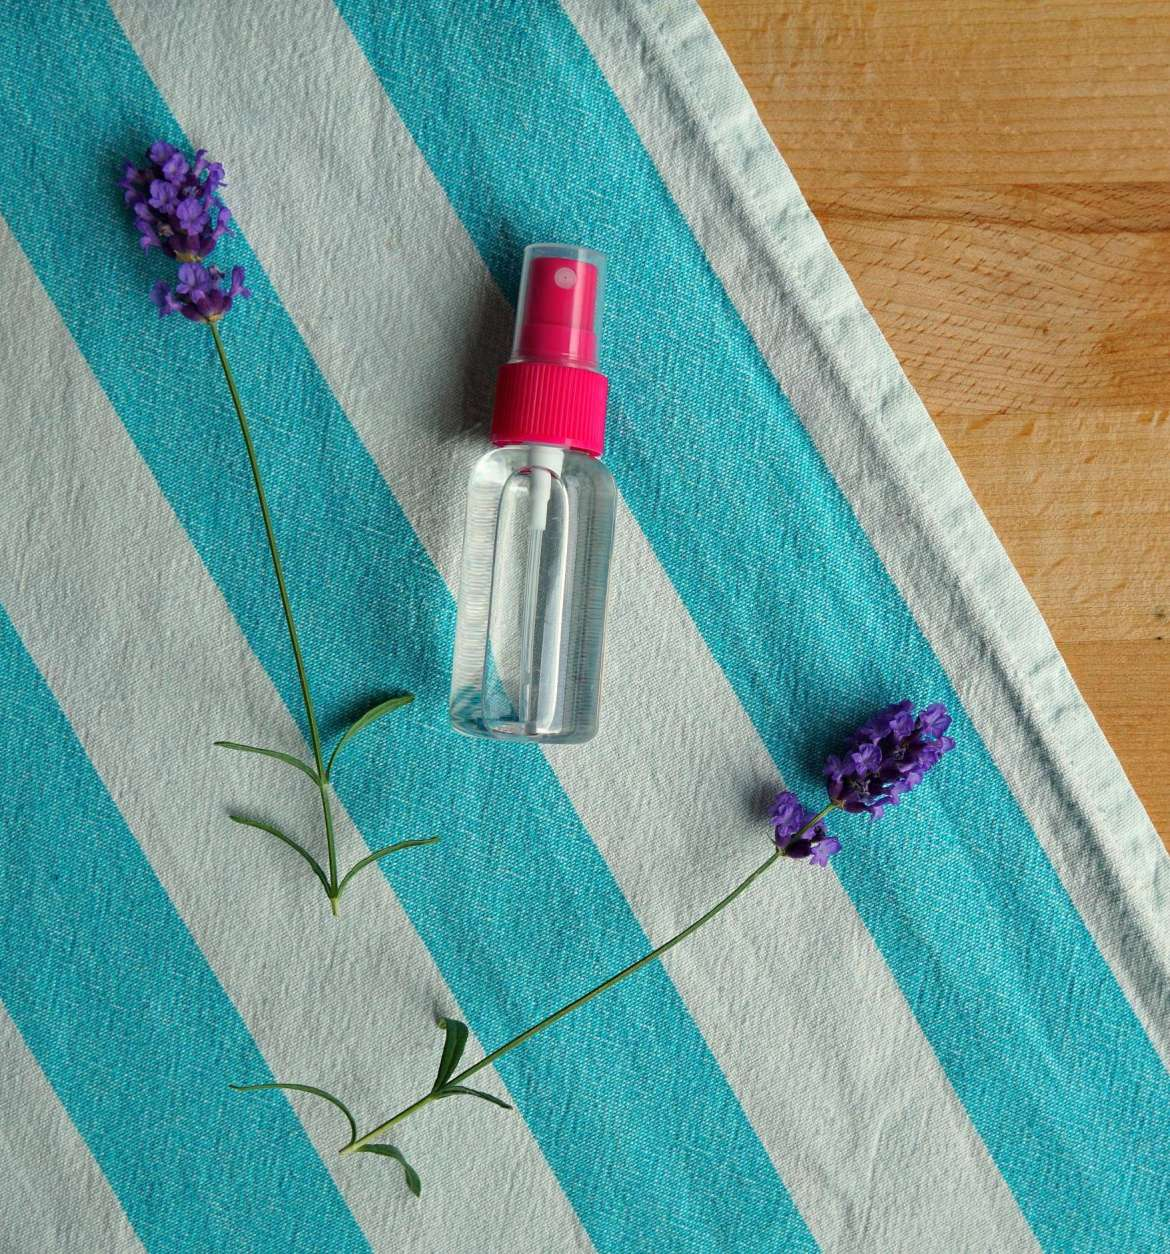 10 WAYS TO KEEP BUGS AWAY THIS SUMMER